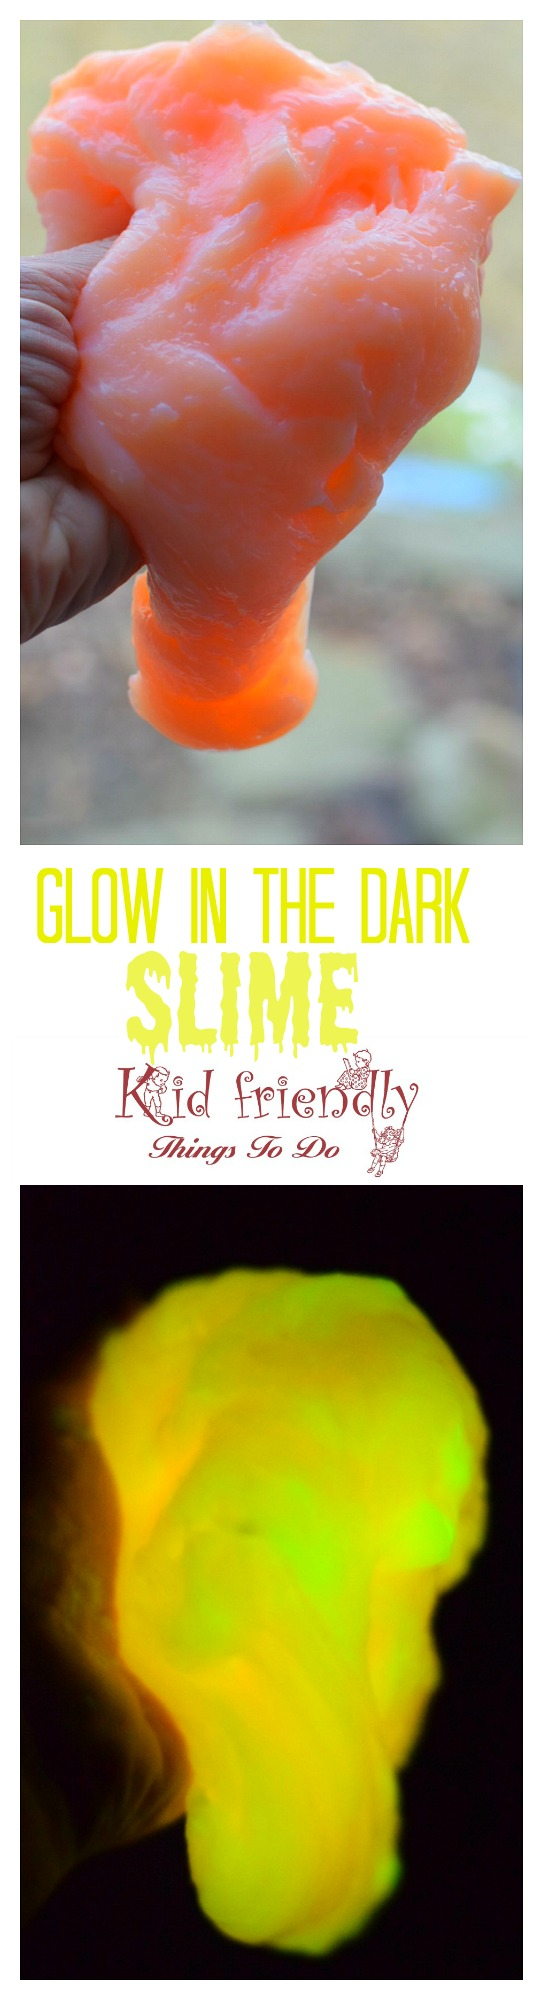 How to make Easy Glow in the dark slime with 4 ingredients! So much fun to do with the kids. You can substitute liquid starch if you don't want borax. www.kidfriendlythingstodo.com